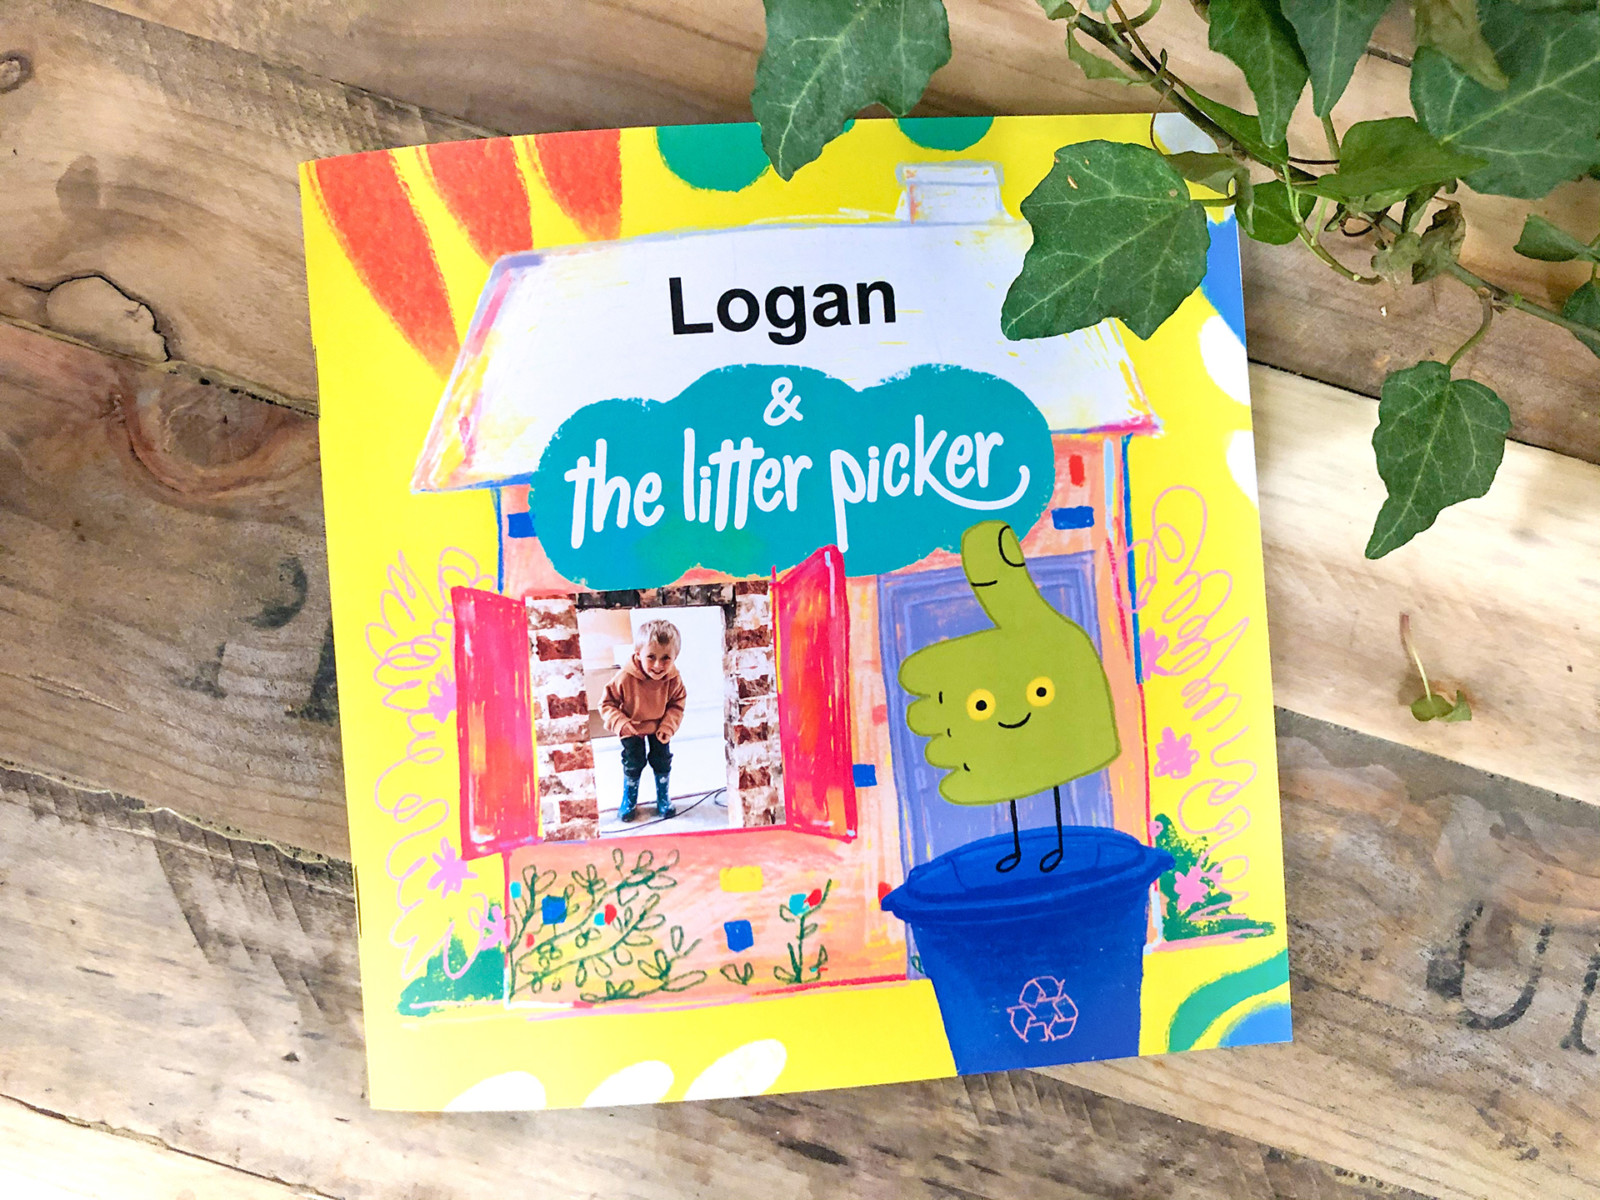 the litter picker softcover story book